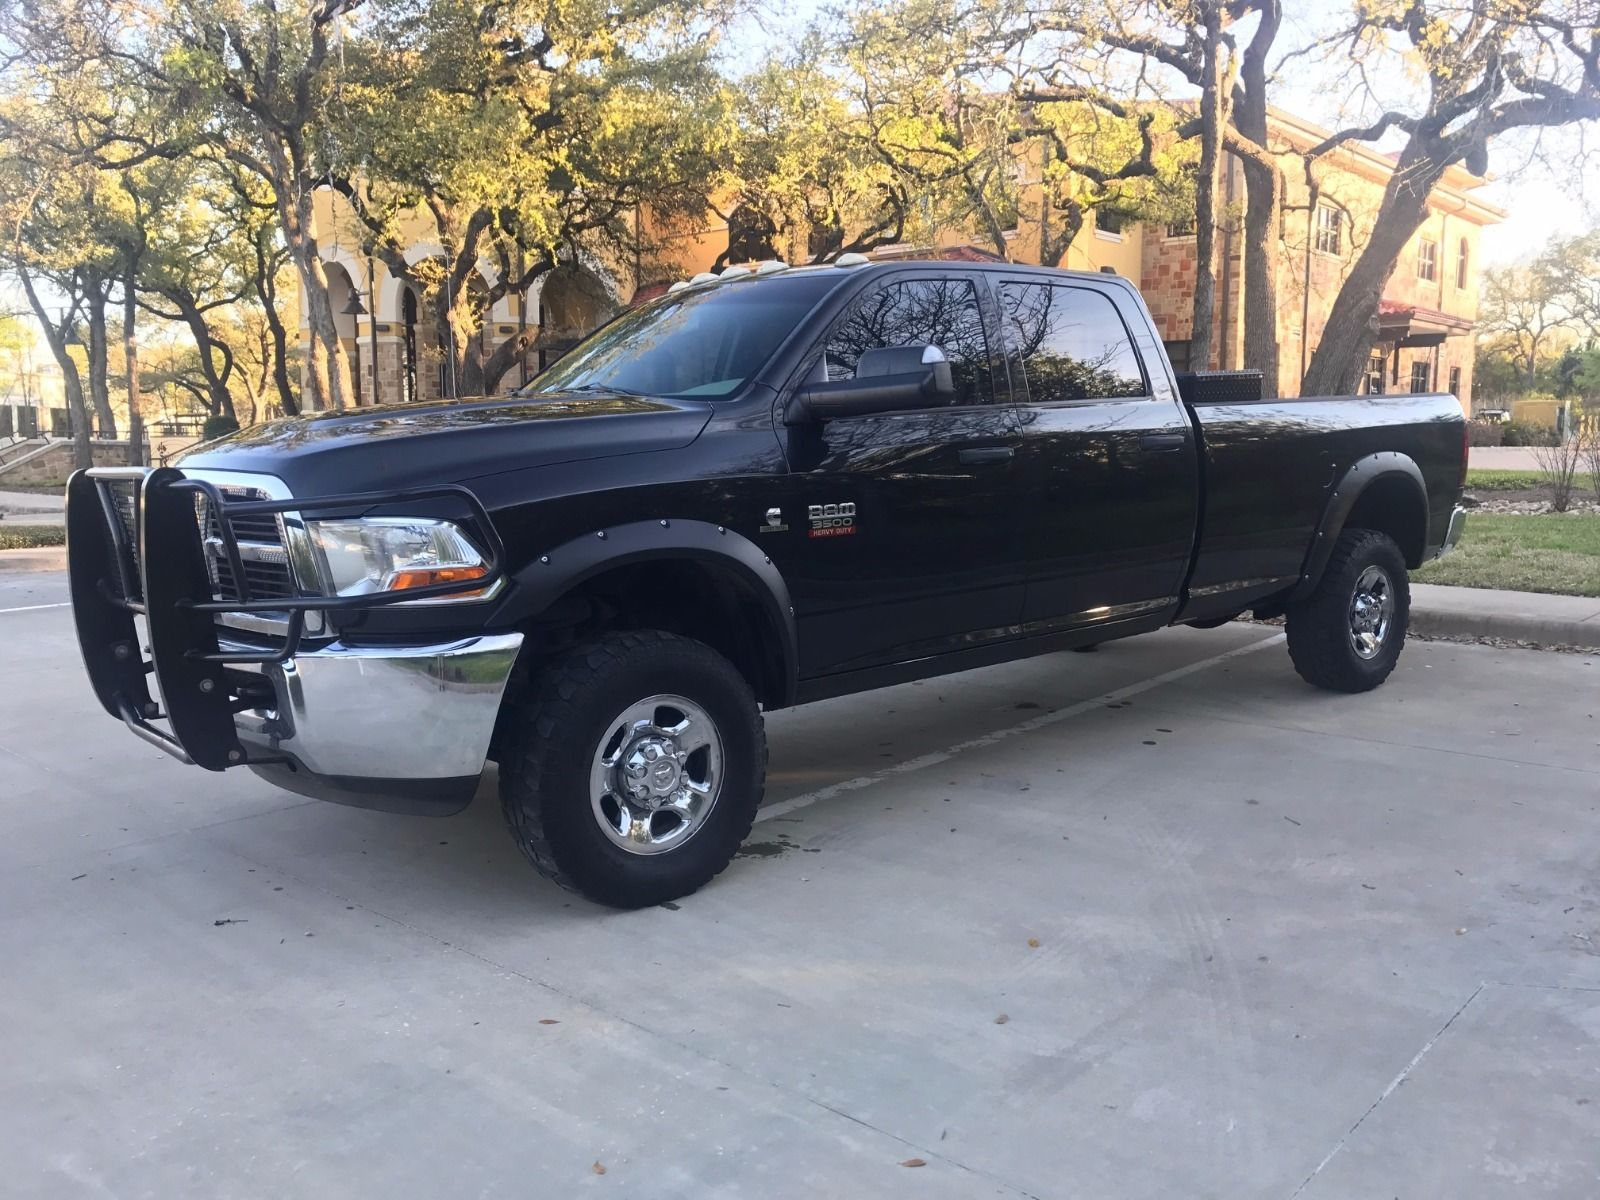 Clean Texas truck 2011 Dodge Ram 3500 SLT lifted for sale